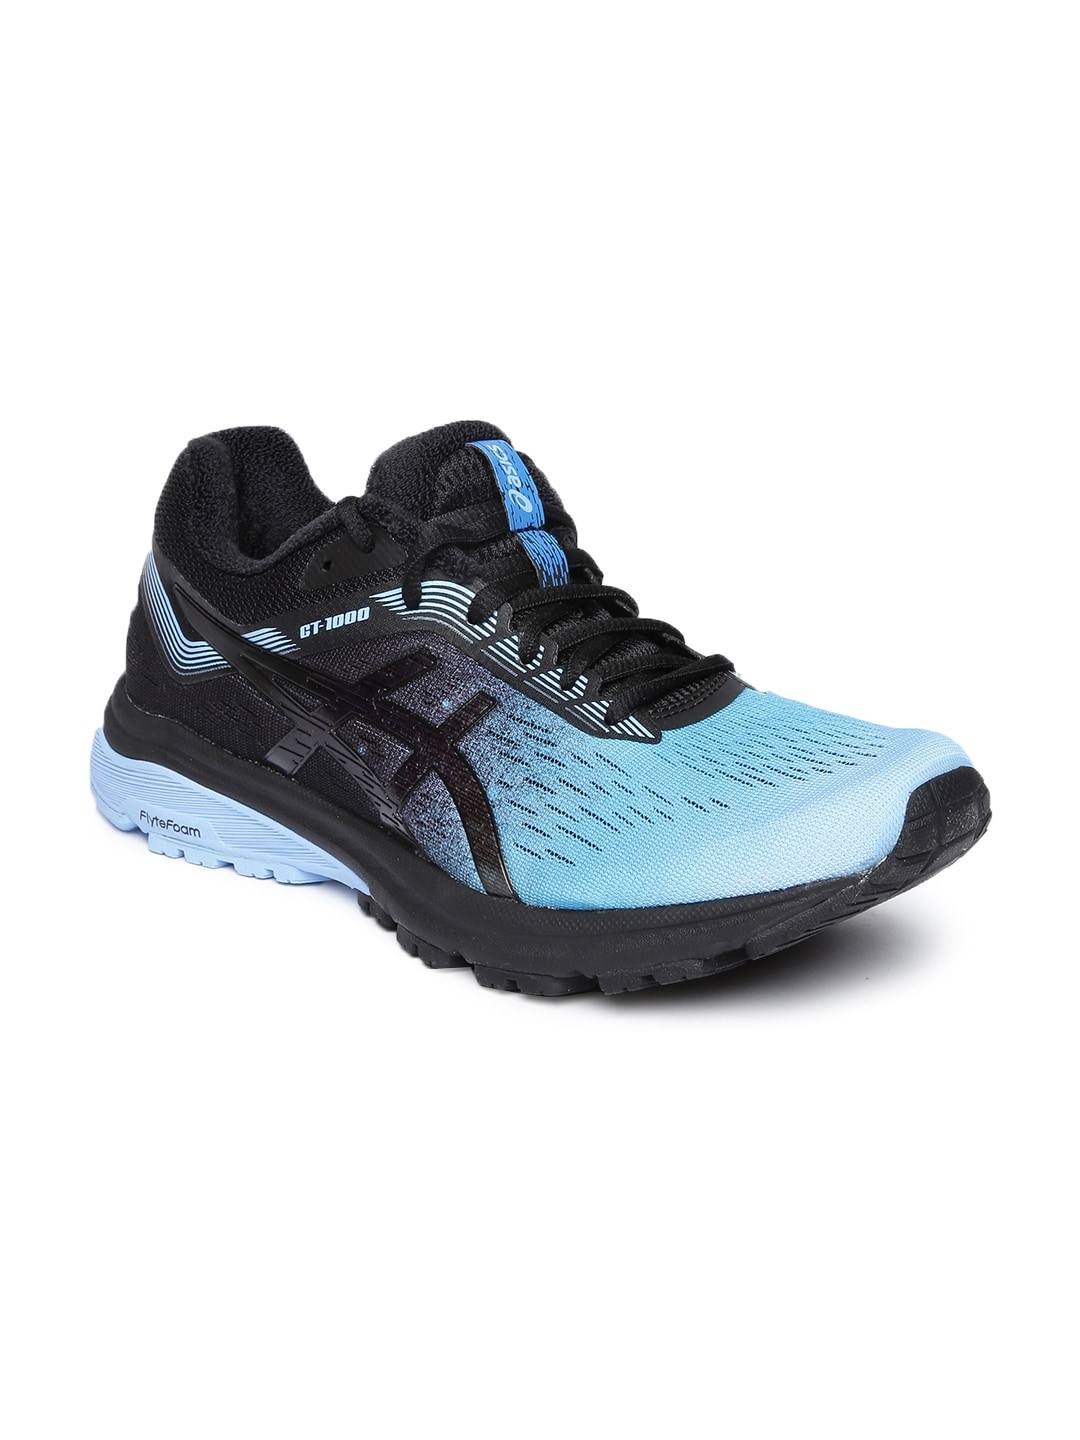 a4a4e86266227 asics shoes. Asics Sport Shoes - Buy Asics Sport Shoes online in India. asics  shoes. Asics MetaRide Running Shoes - AW19 - Save ...